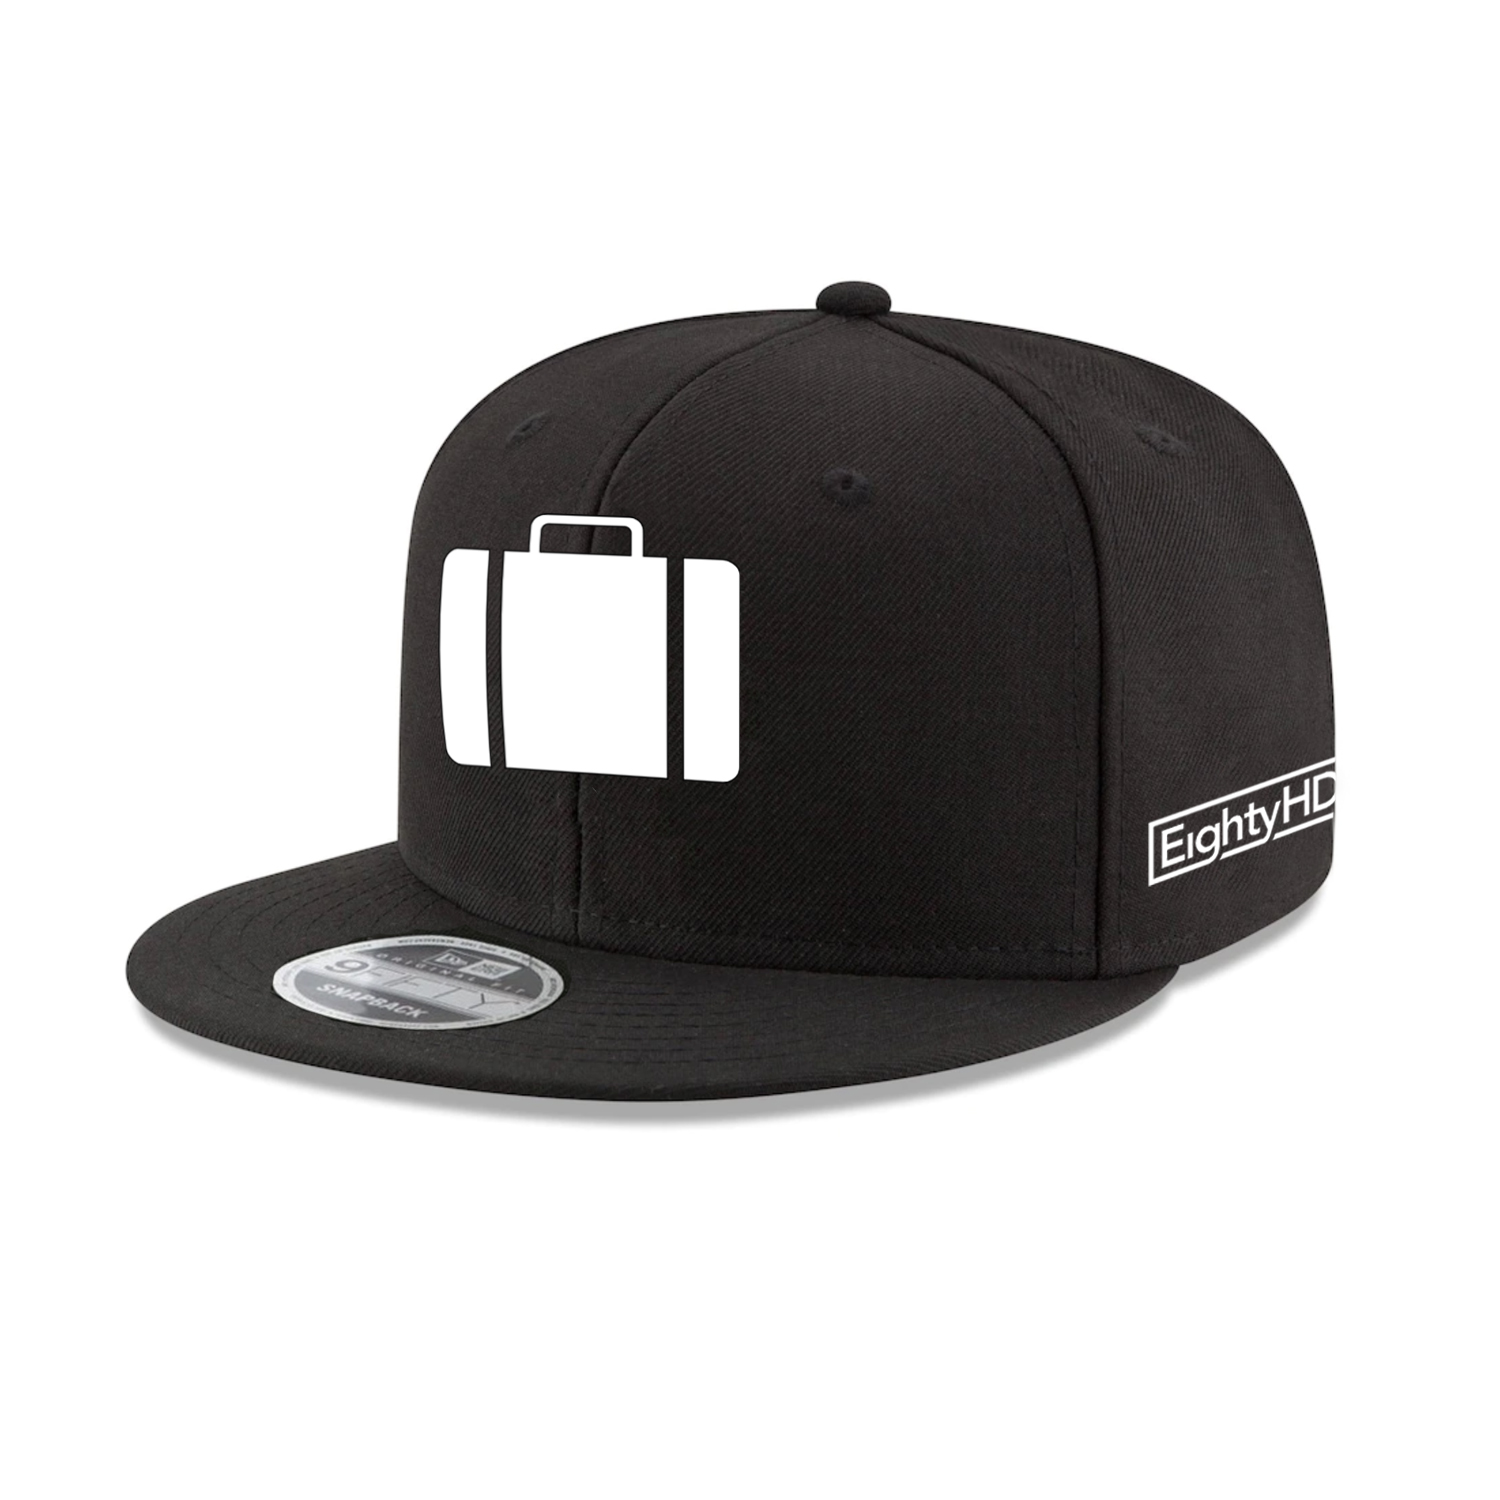 """Drugs in a Suitcase"" New Era Snapback Cap"